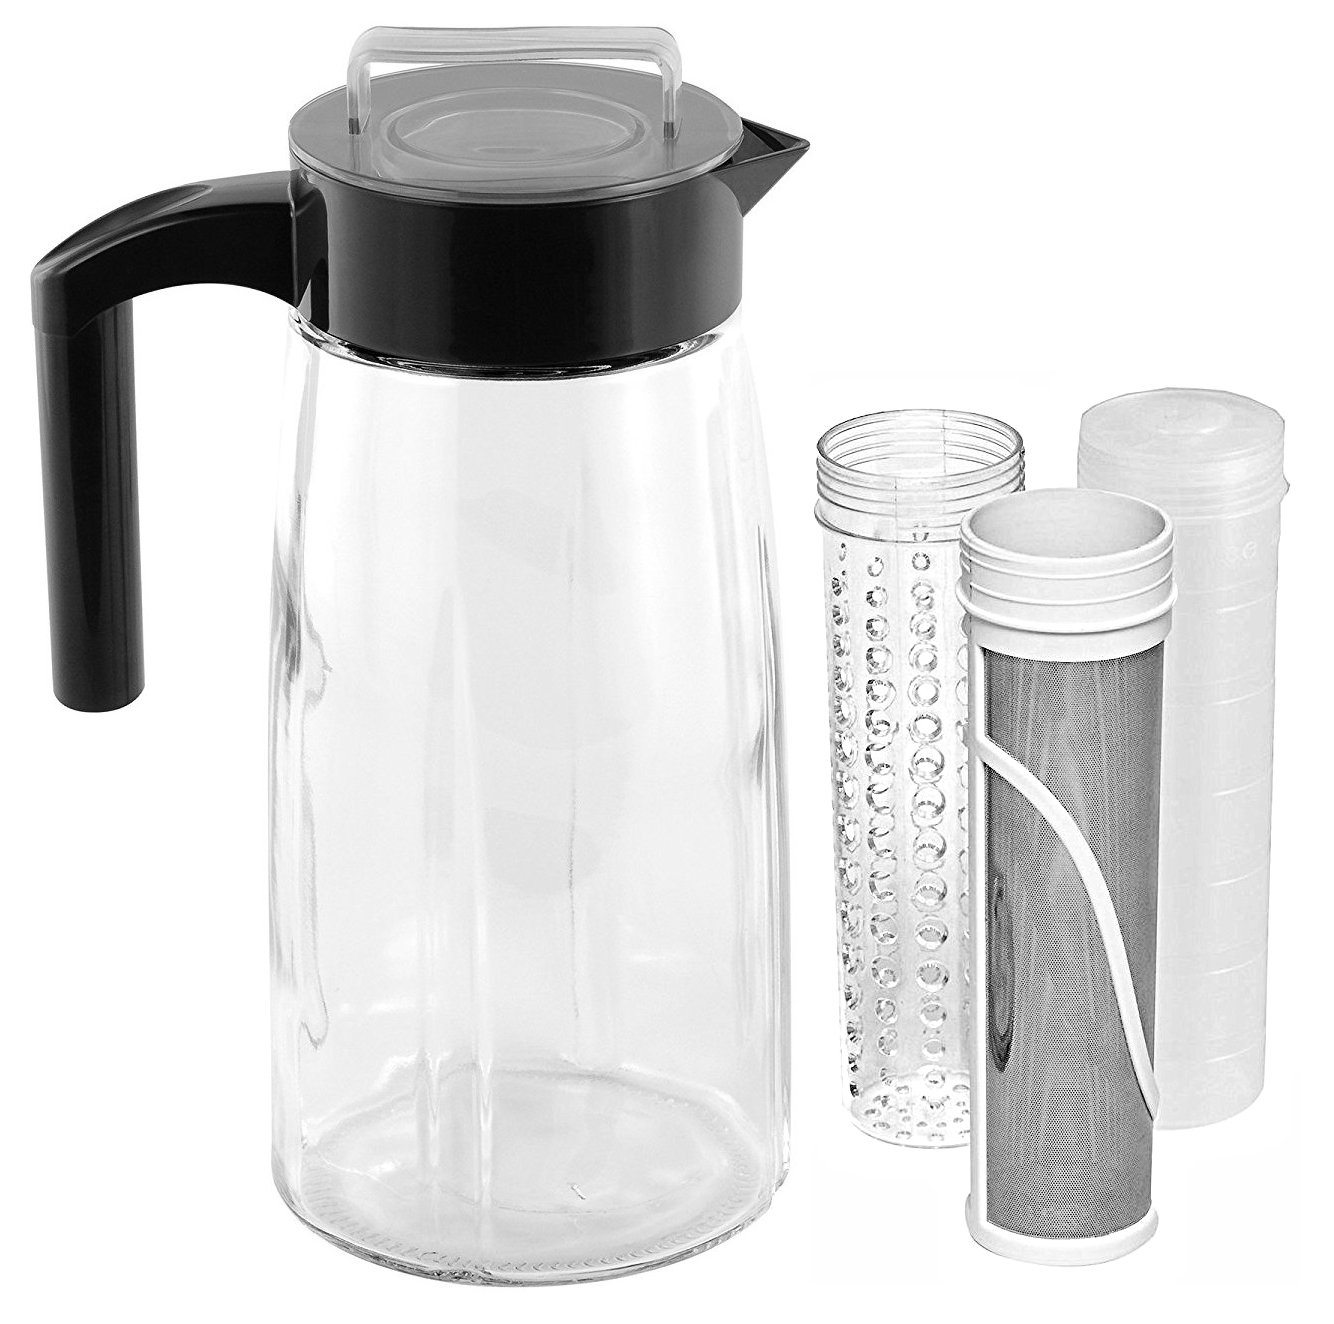 Cooking Upgrades 60oz Glass Cold Brew Coffee Maker and Tea Maker With Ice And Fruit Infuser Inserts Included (Black)